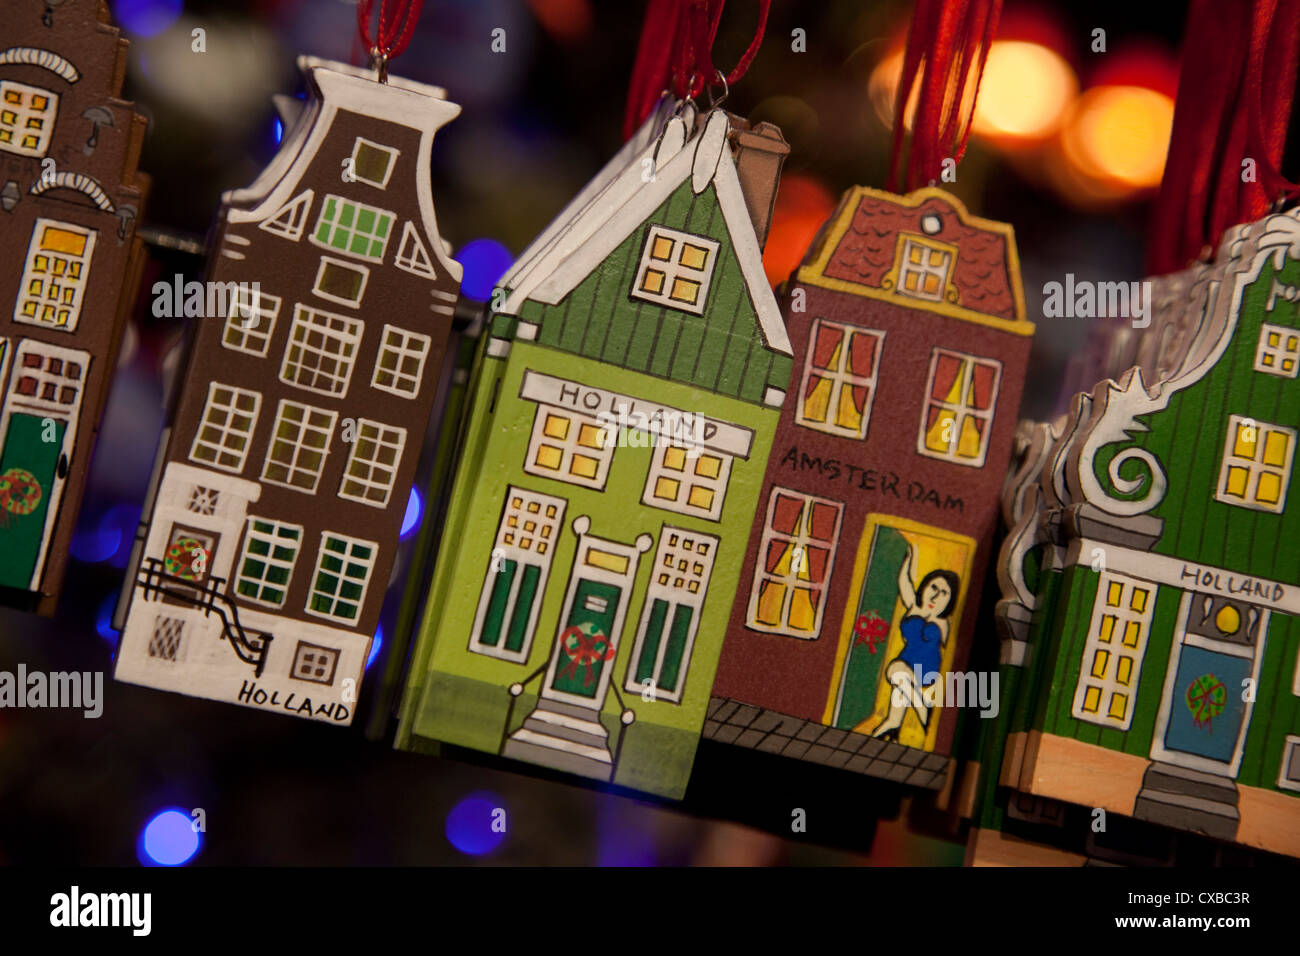 Souvenirs, Amsterdam, Holland, Europe - Stock Image